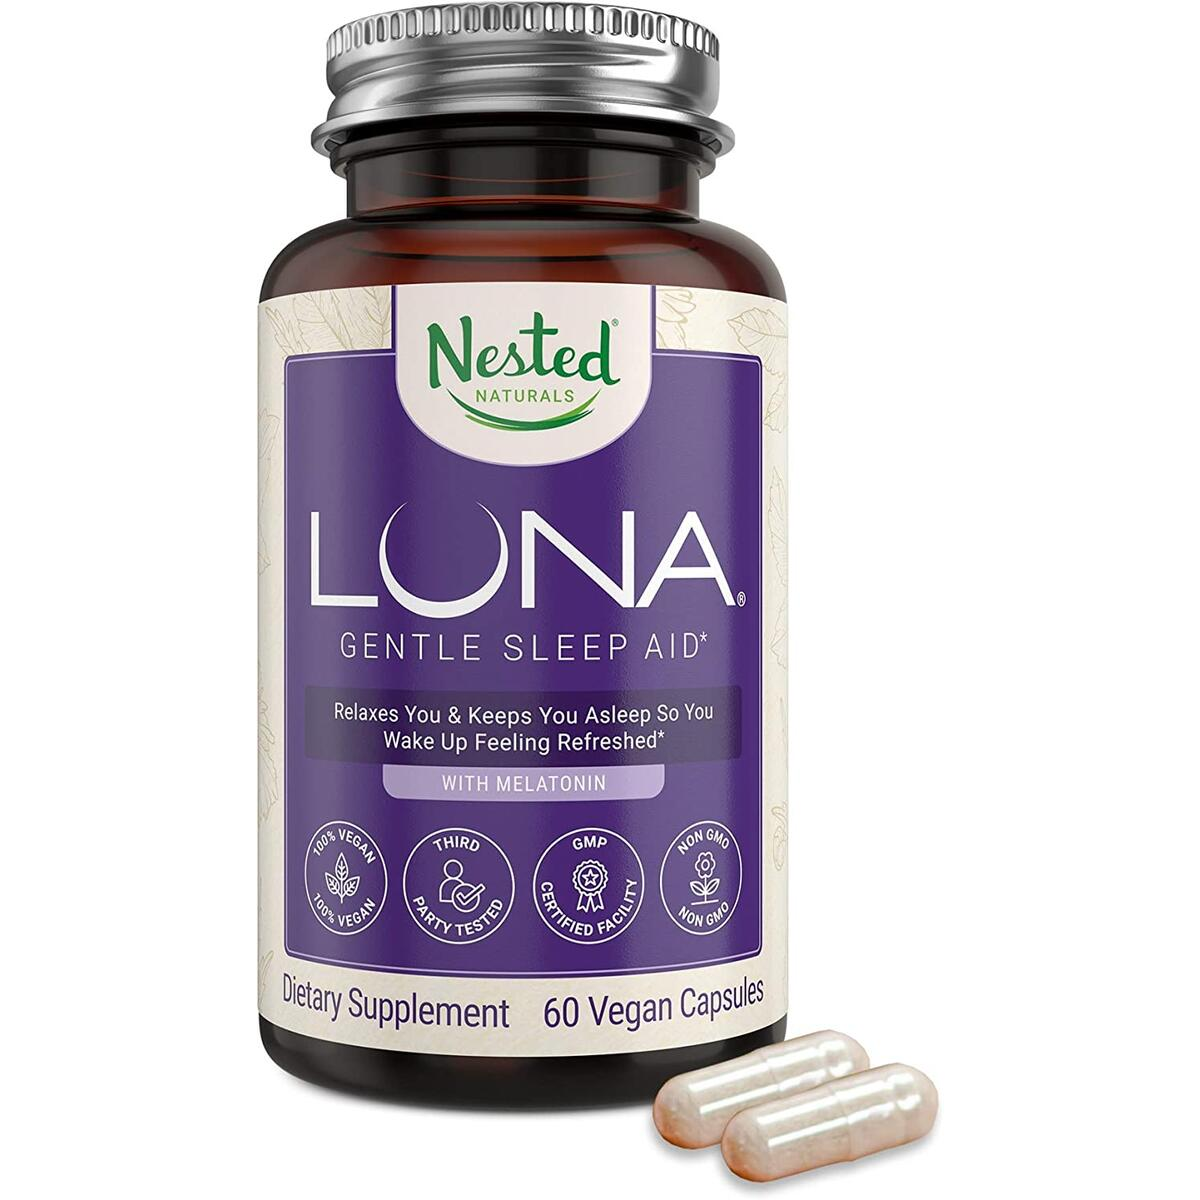 Nested Naturals Luna | #1 Sleep Aid on Amazon | Naturally Sourced Ingredients | Sleeping Pills for Adults